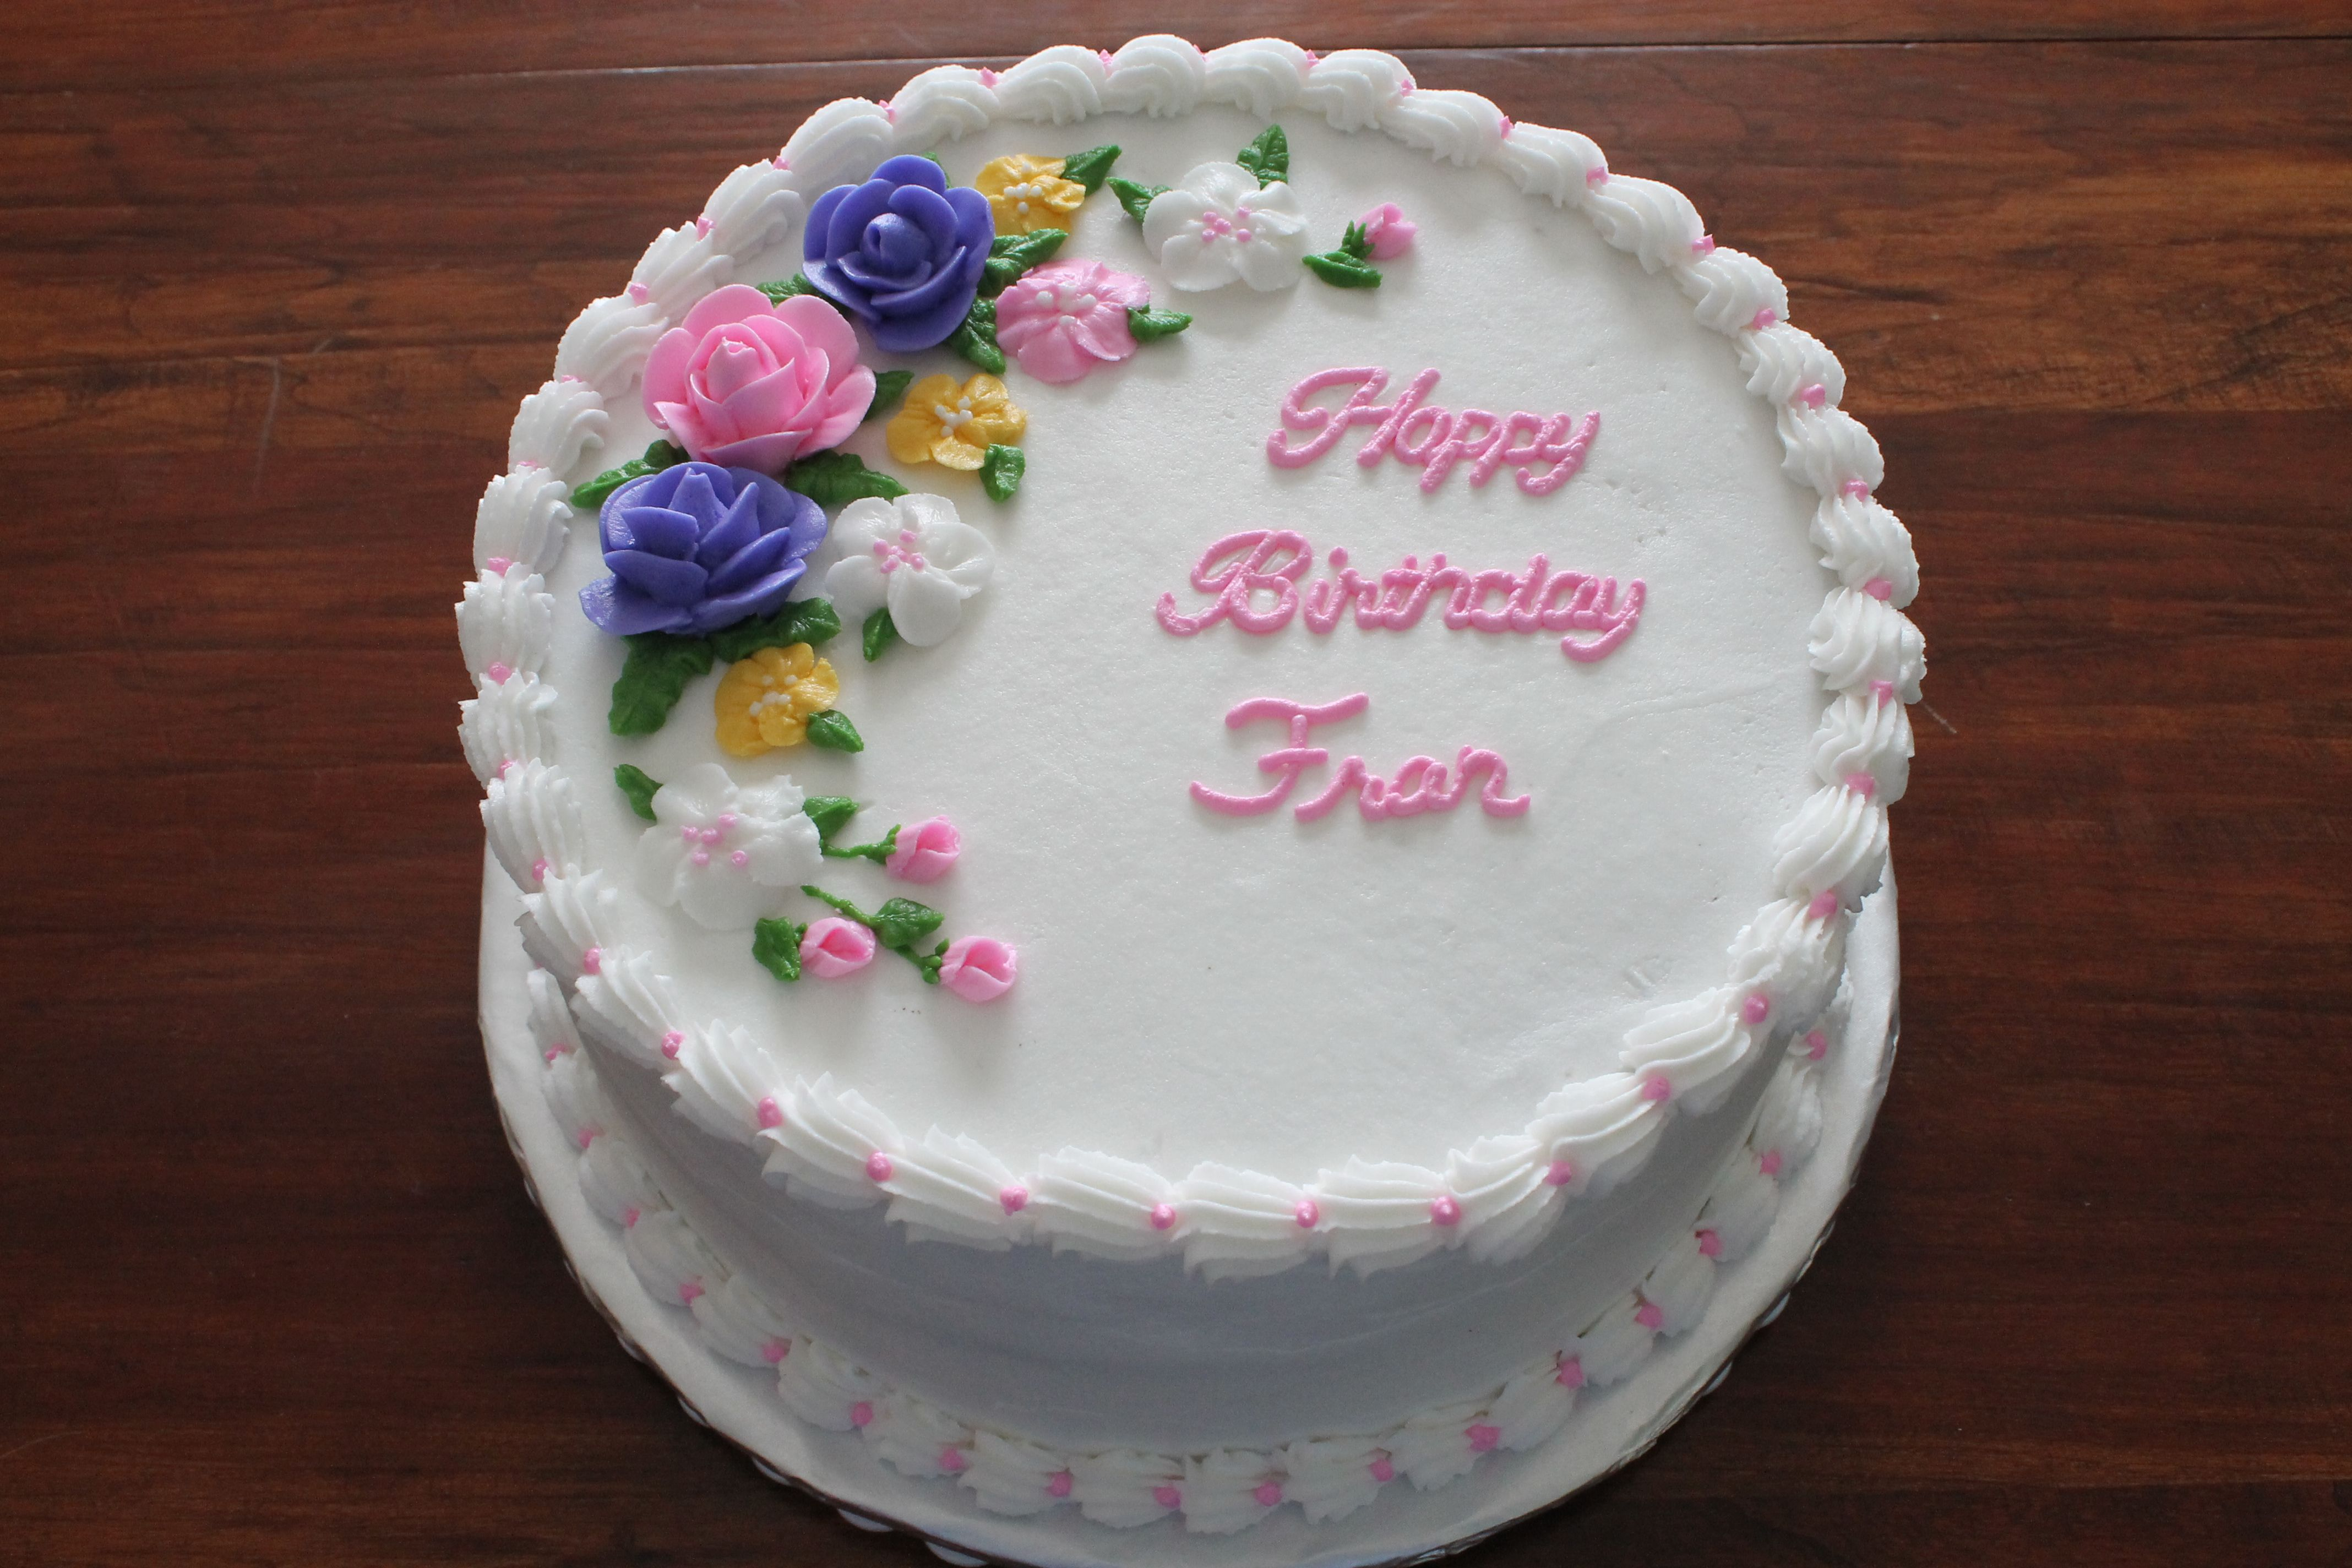 Birthday Cake Ideas With Buttercream : Buttercream birthday cake with roses Decorated round(ish ...